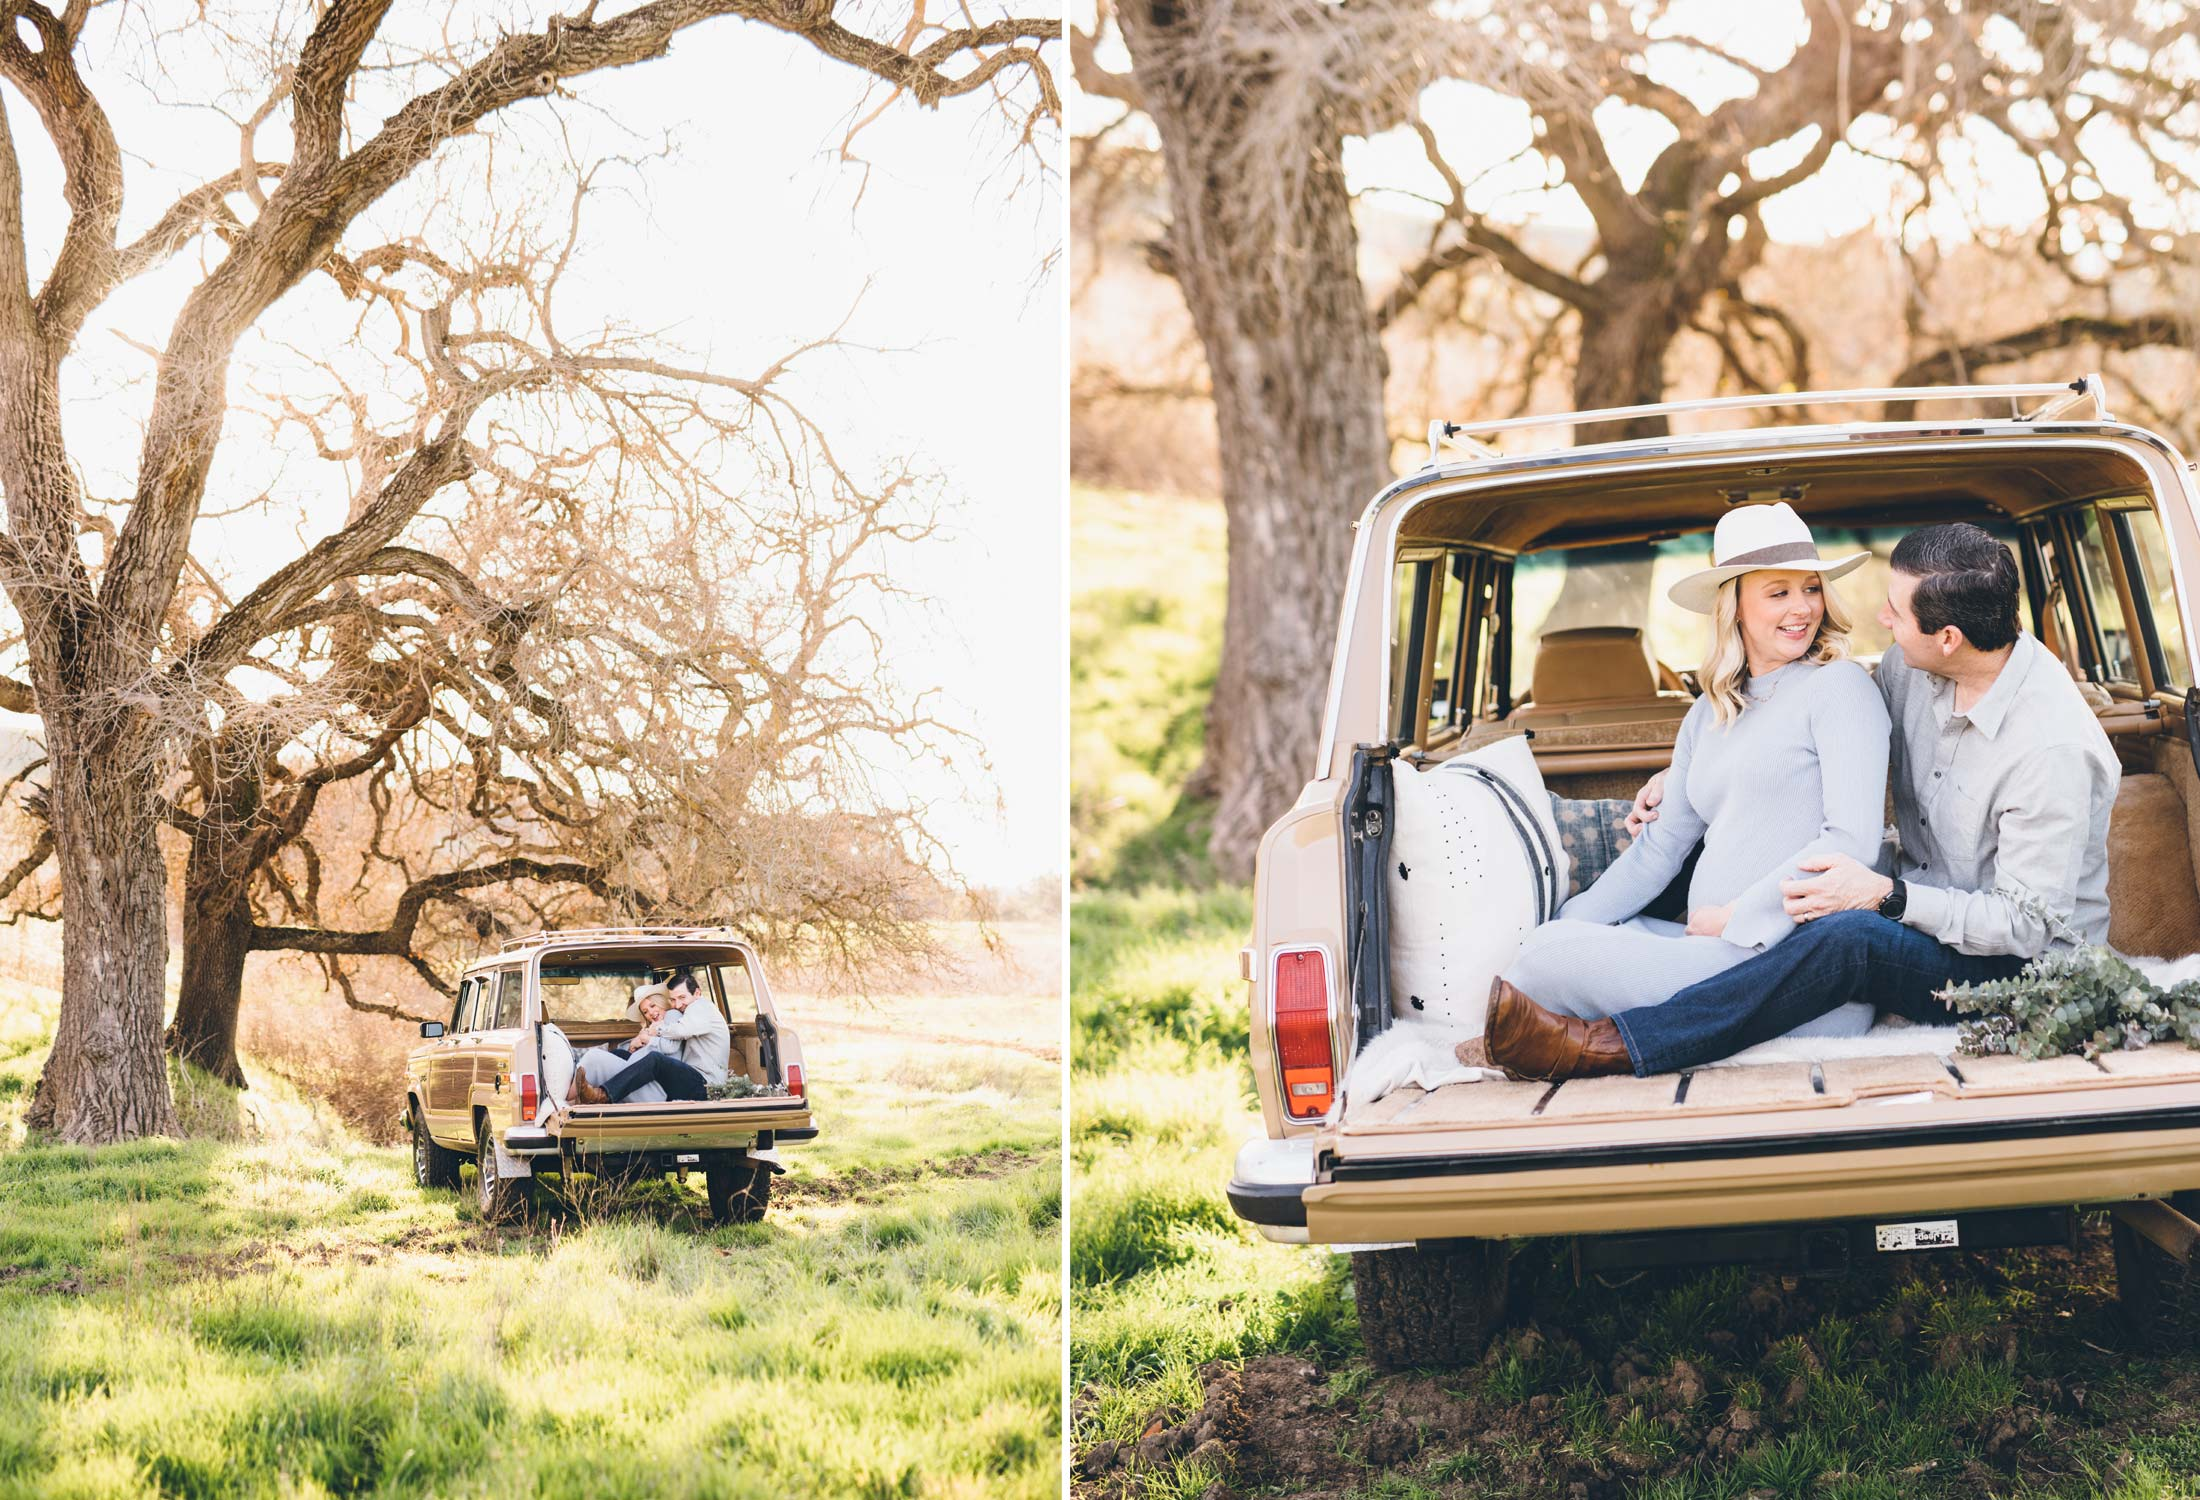 maternity-session-classic-car-open-space-oak-trees.jpg